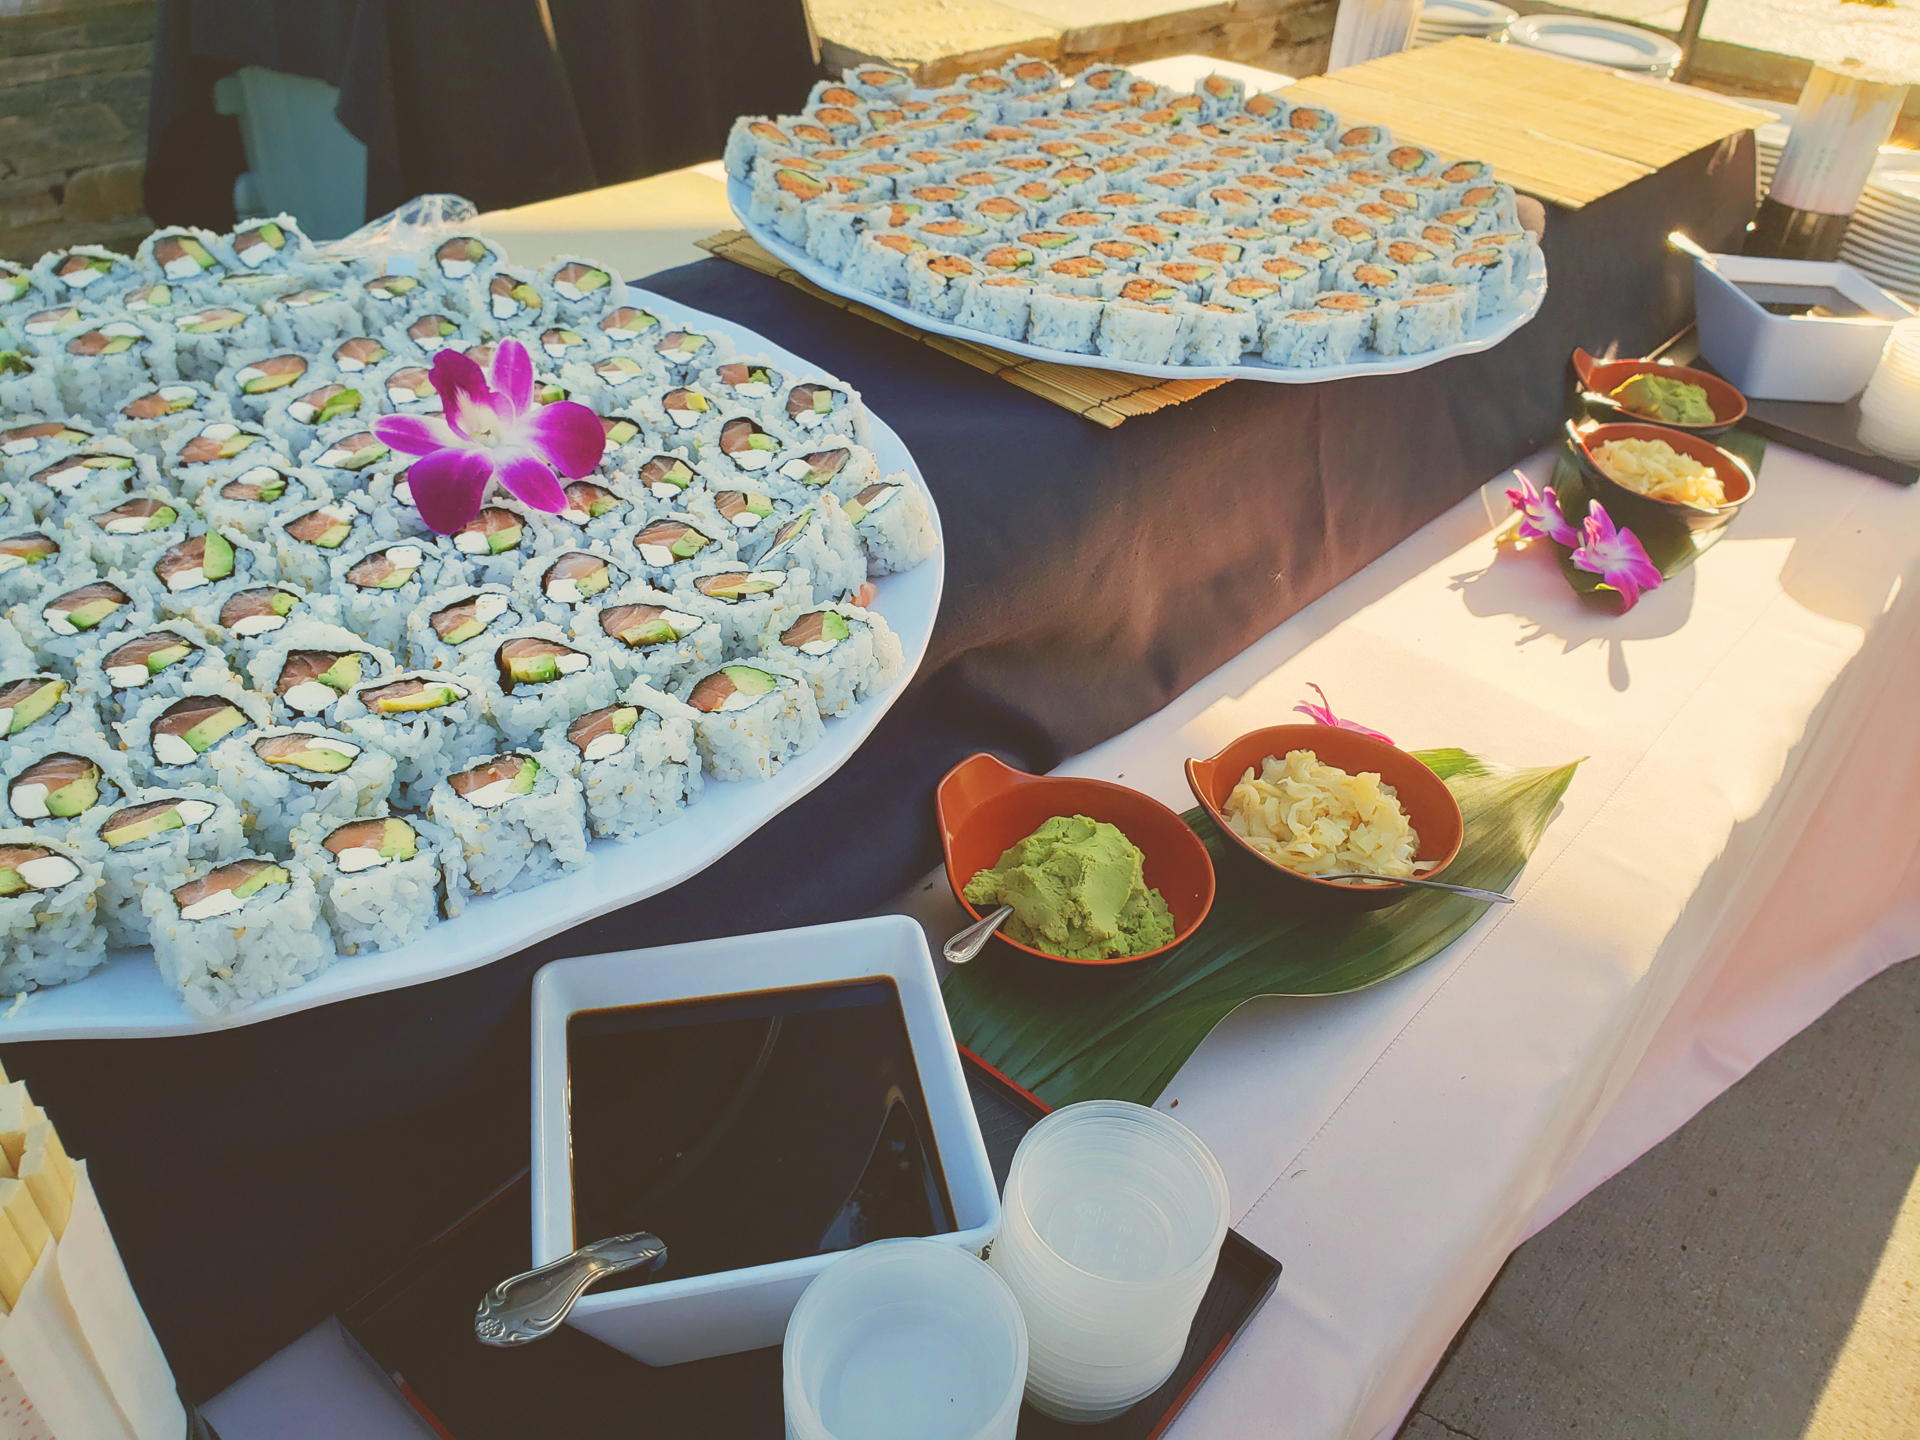 akioni-catering-sushi-teppanyaki-authentic-japanese-cuisine-los-angeles-sashimi-hawaiian-bbq.jpg